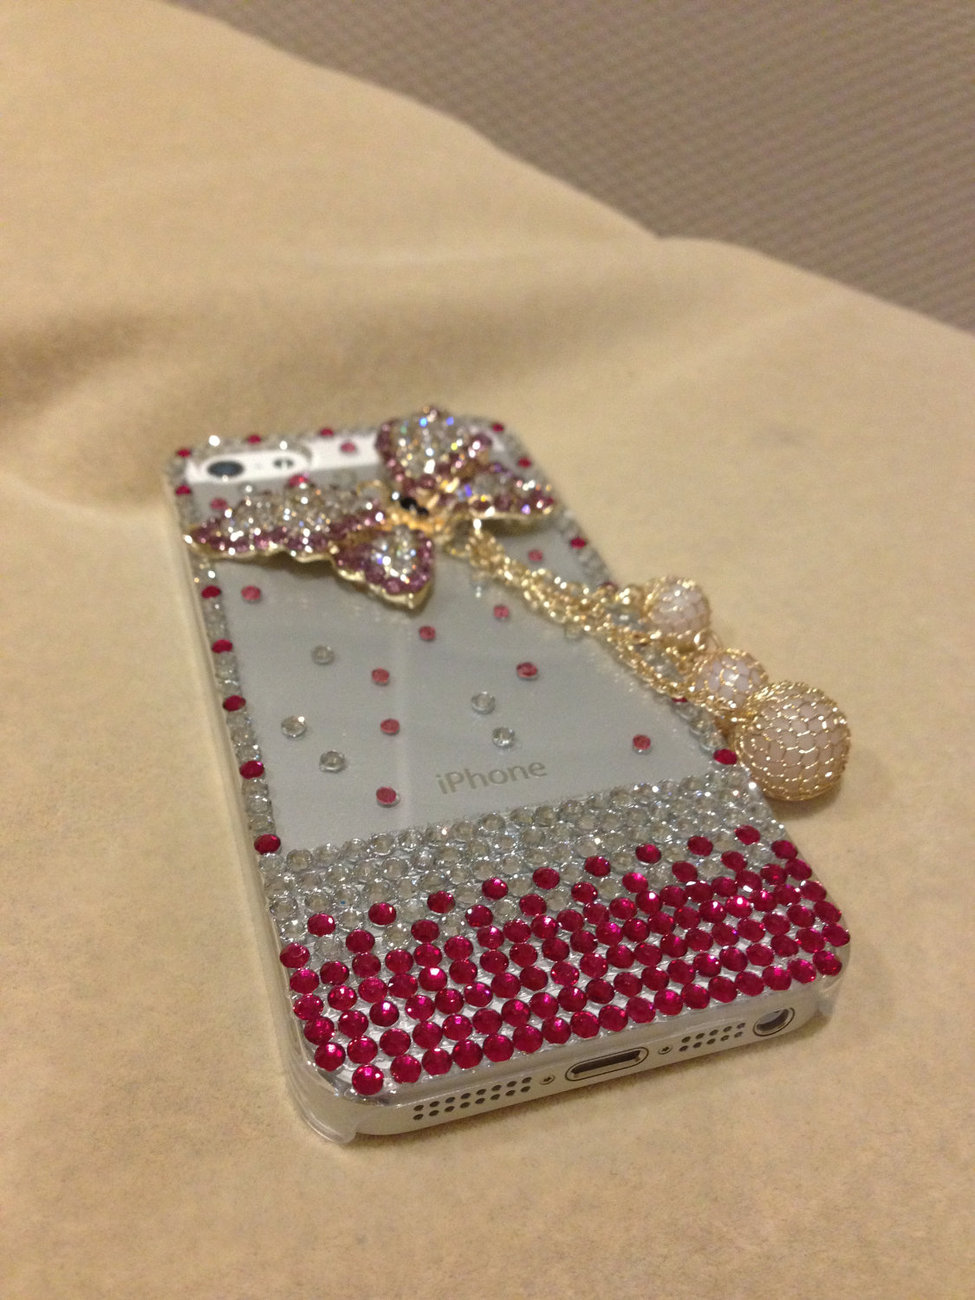 3D Luxury Bling Diamond Crystal Butterfly Clear Case For iphone 5 Very Beautiful image 3